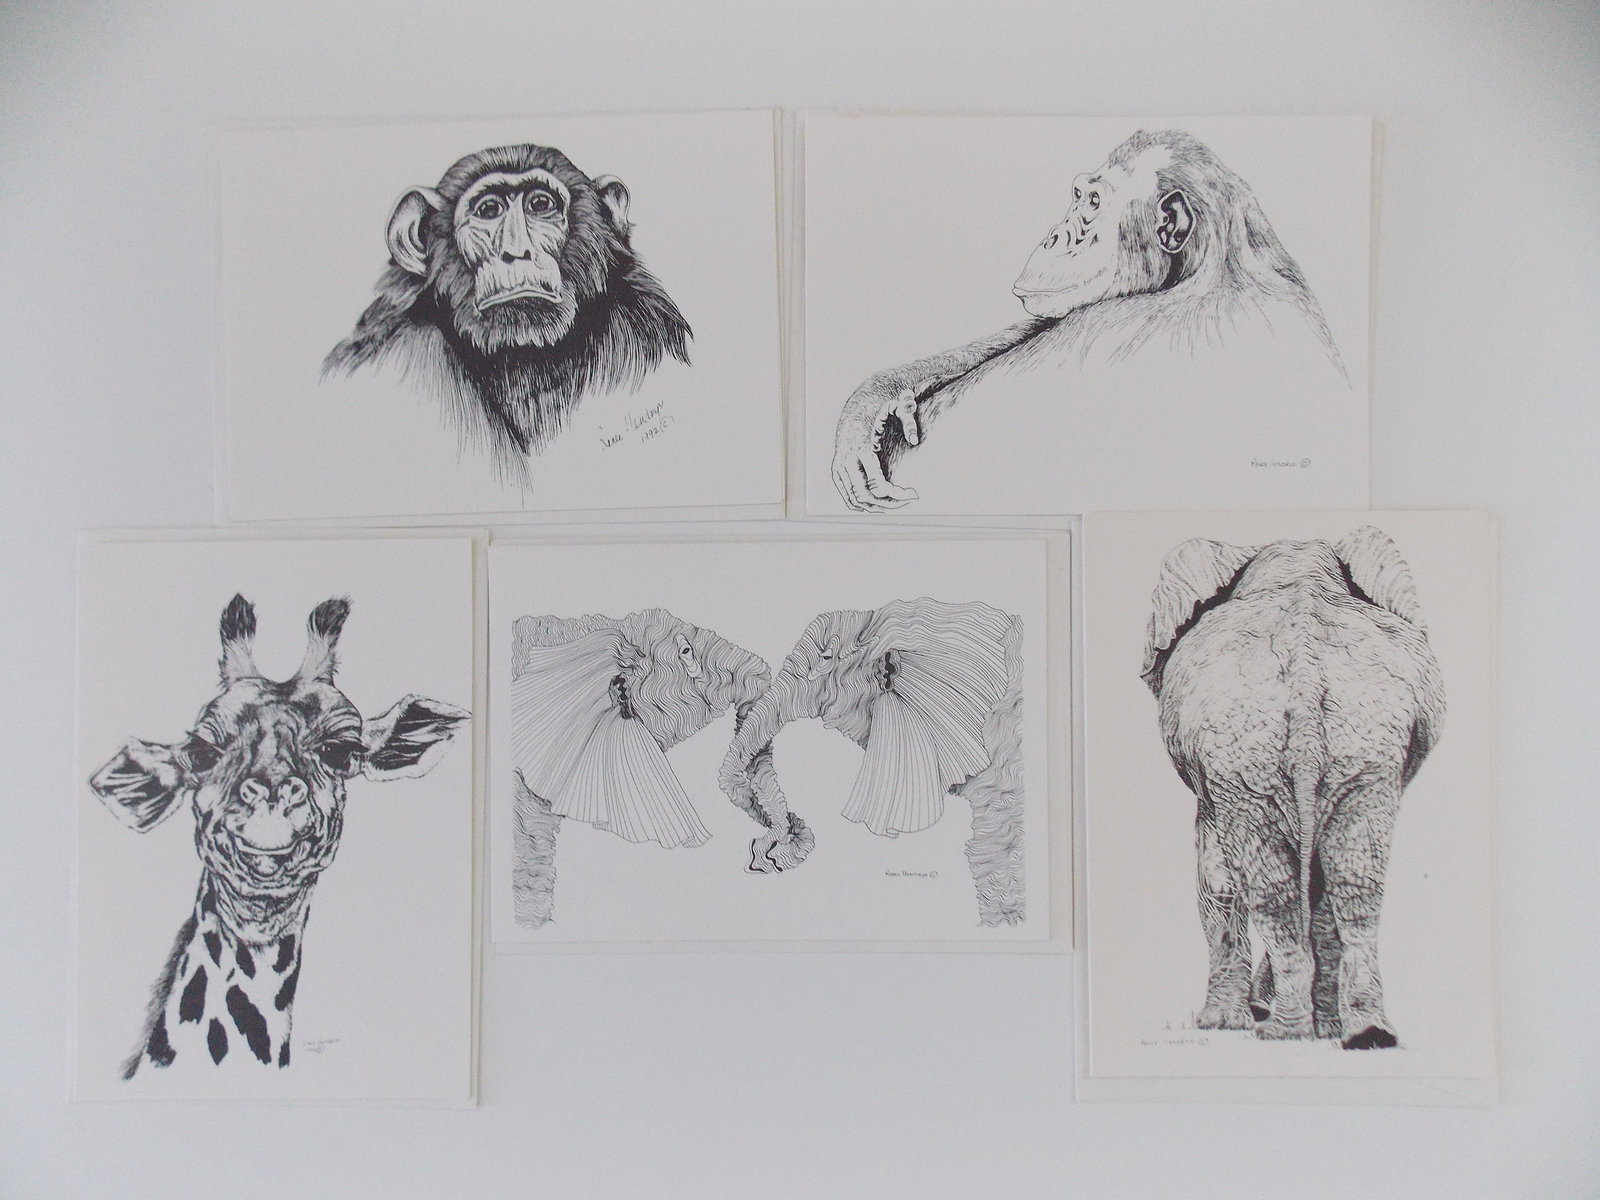 Two Elephants, Framed, Silver Matted Wildlife Art Print, Pen and Ink, Animal Art